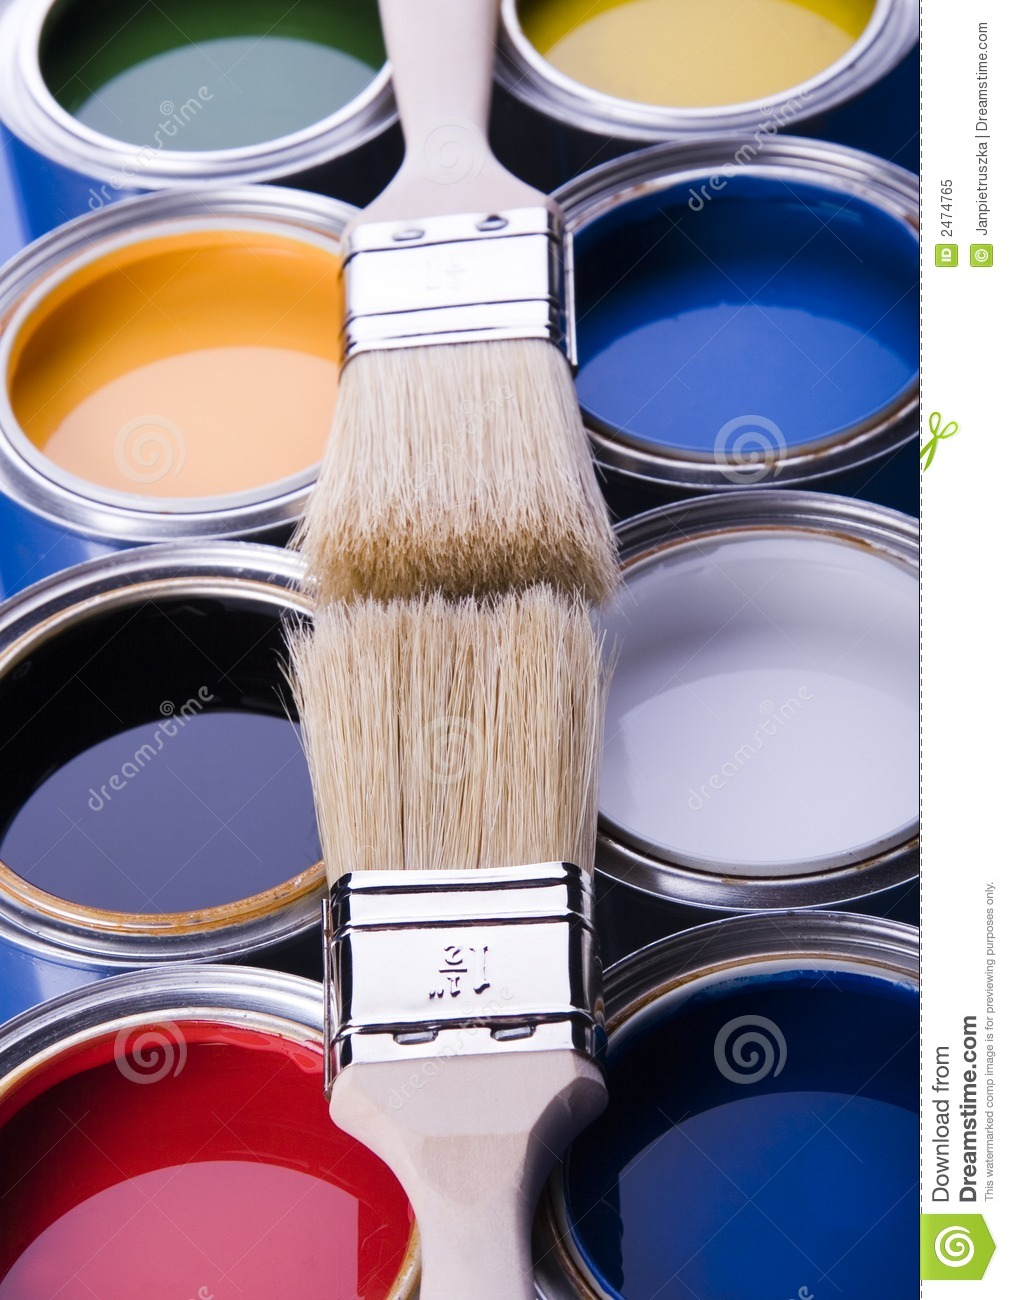 Paint brush and paint